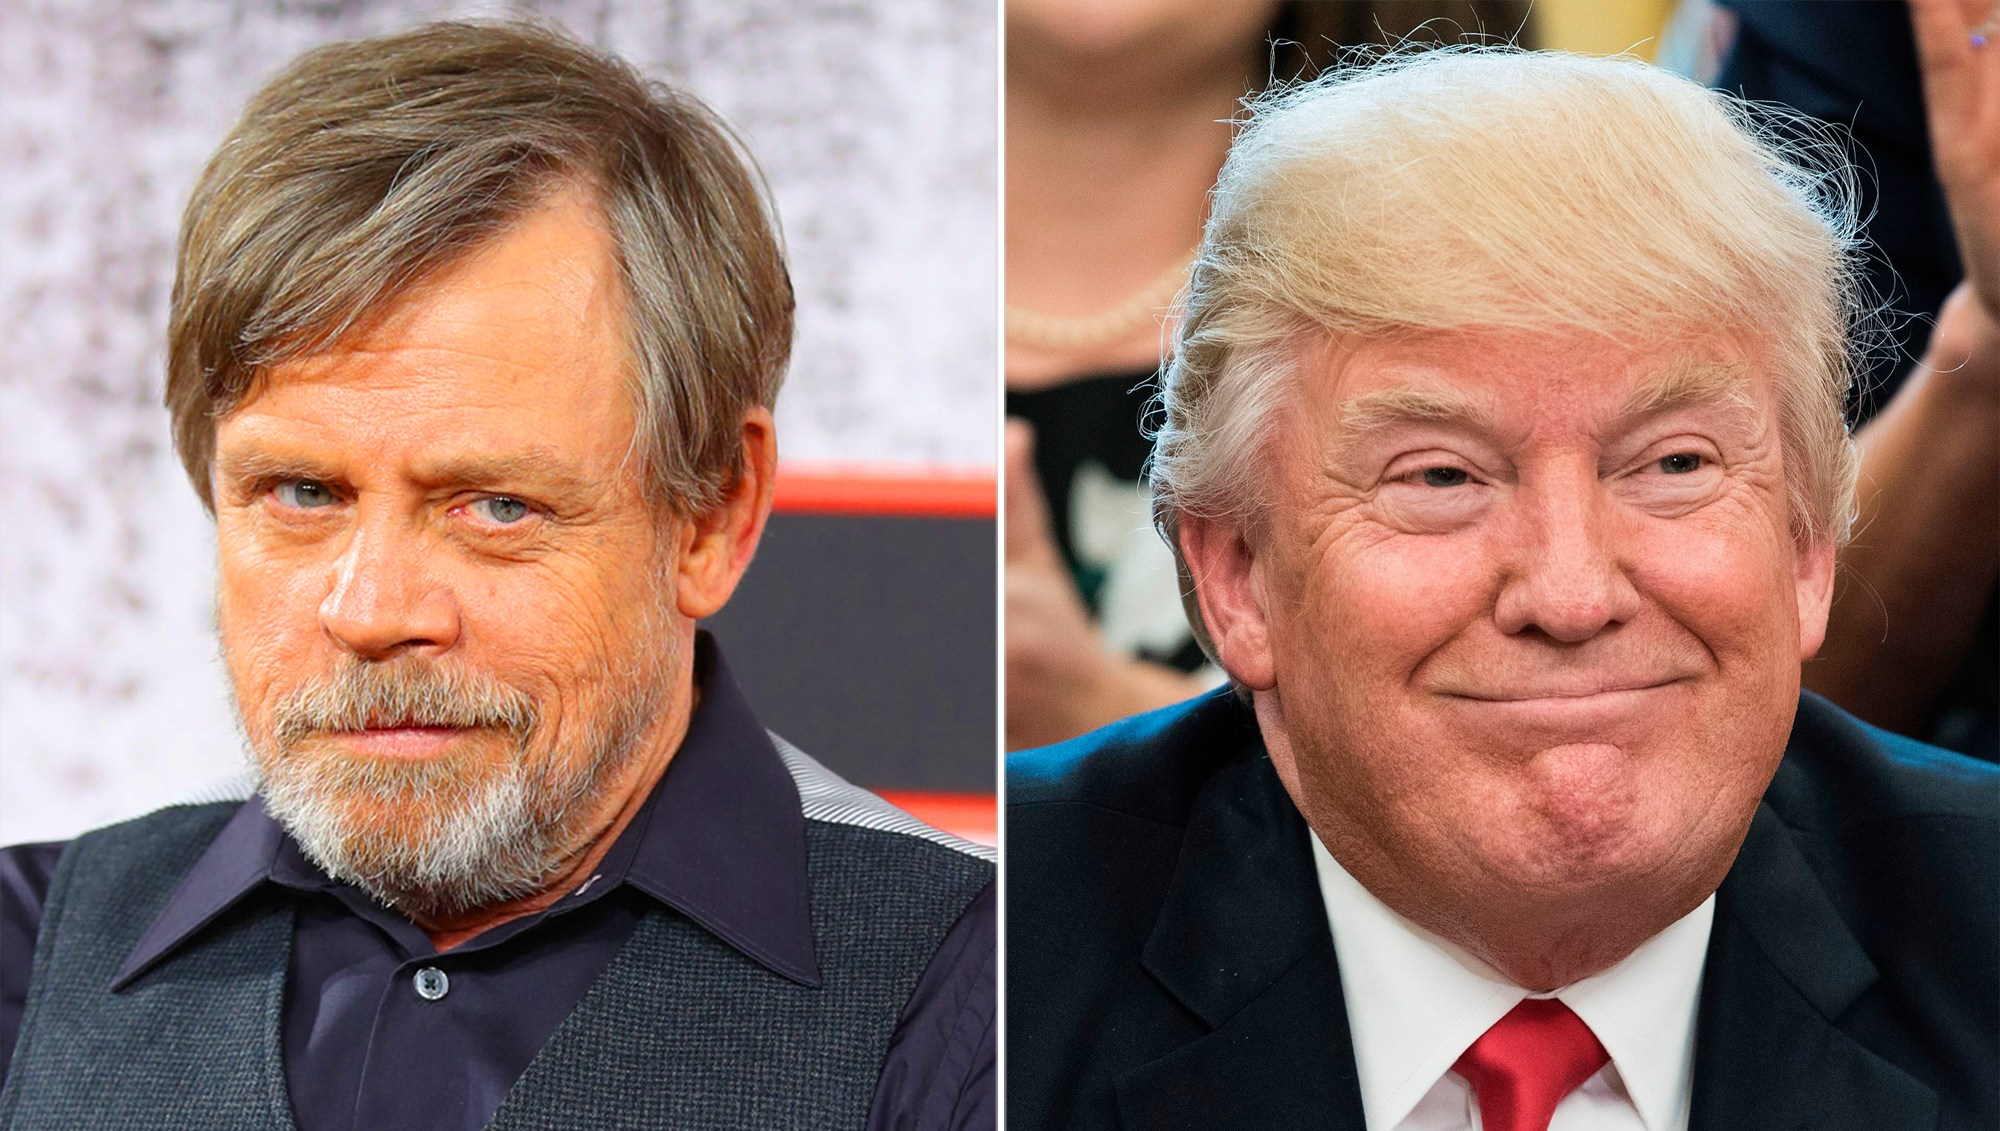 Mark Hamill Strikes Back at Trump's Space Force Idea With Star Wars-Inspired Tweet